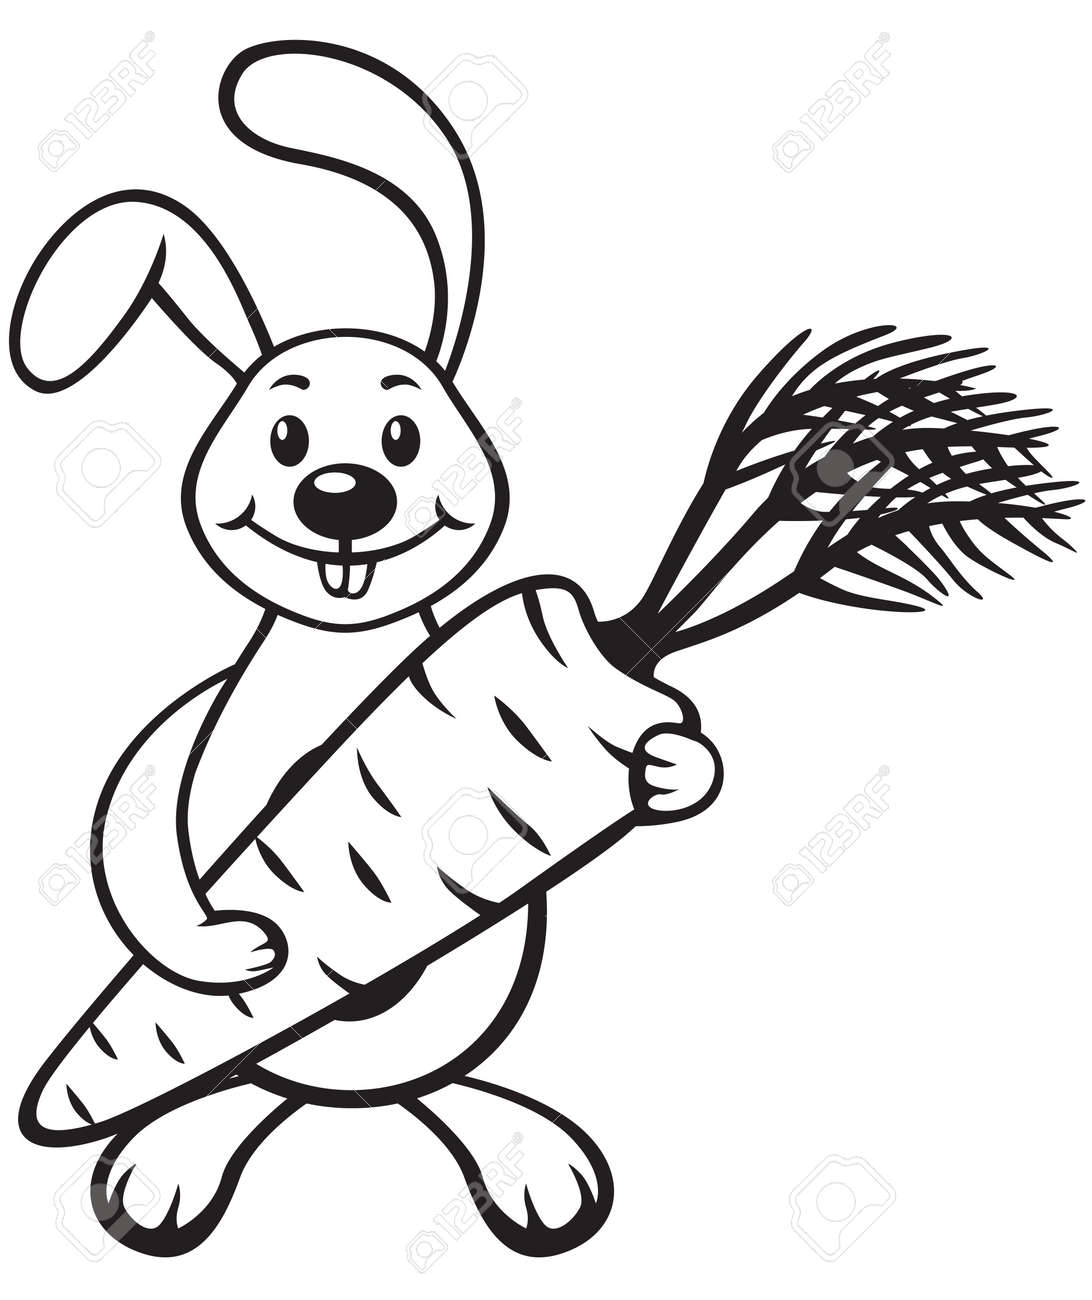 Contour Image Of Cartoon Bunny With Carrot In Paws Royalty Free ... for Clipart Carrot Black And White  110zmd